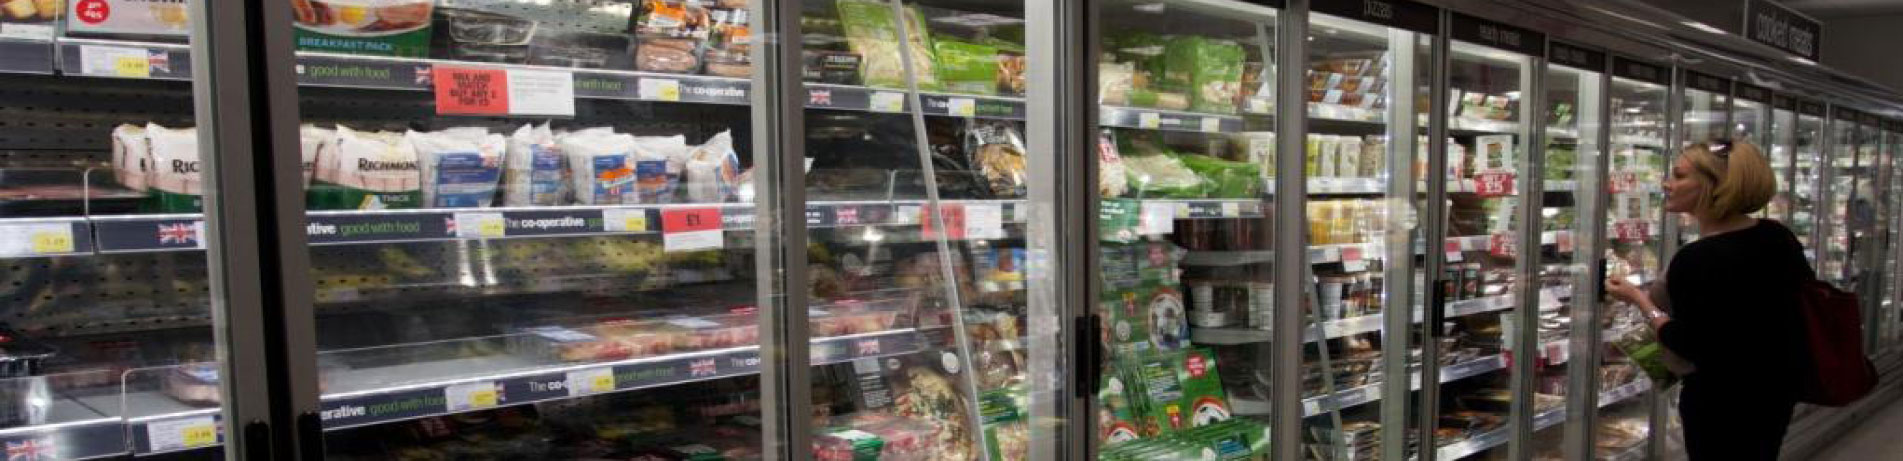 Supermarket aisle with refrigerators